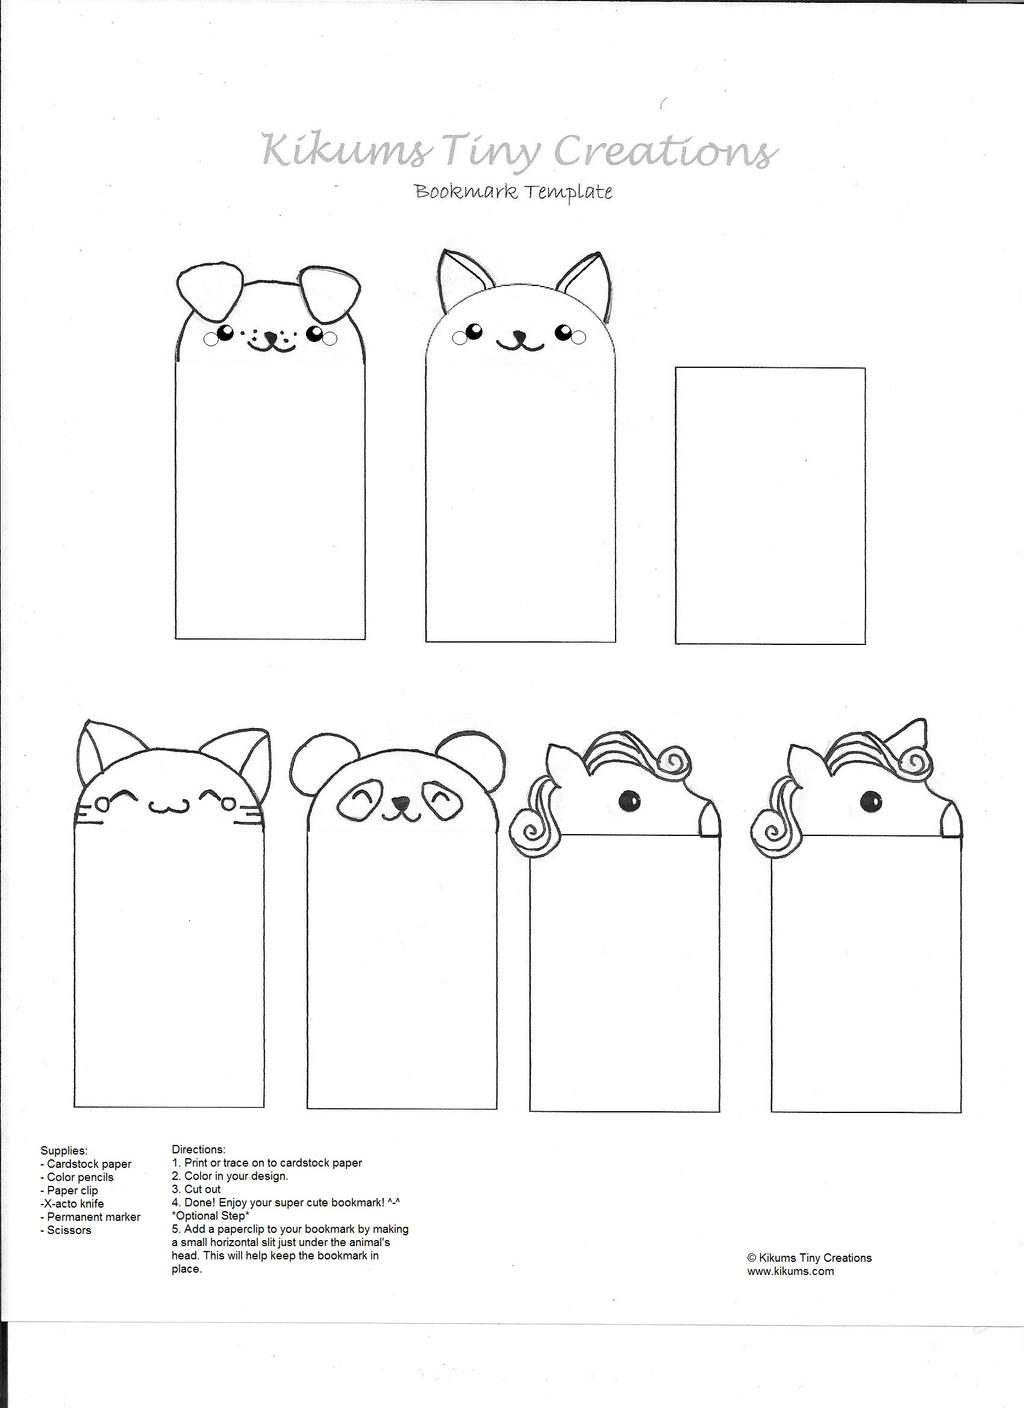 bookworm bookmark template - kawaii bookmark free template by kikums on deviantart